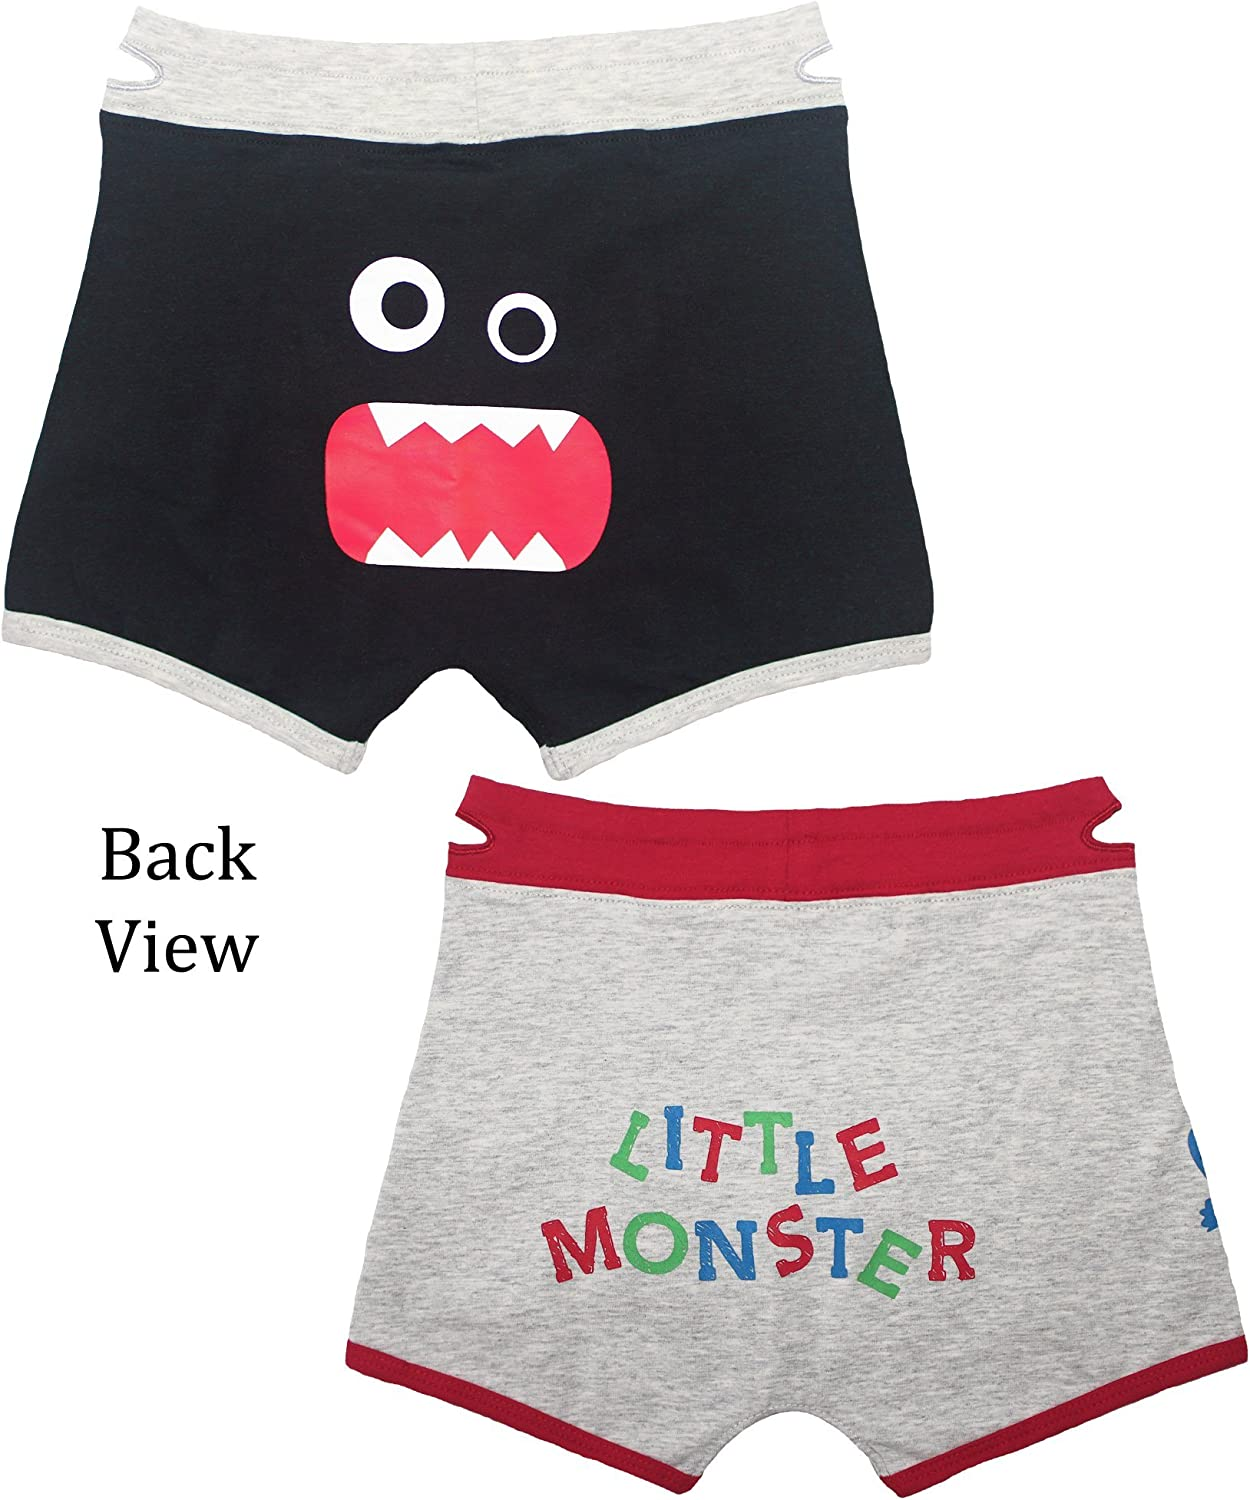 Boys Boxers Toddler Training Underwear with EZ Pull up Handles Tag Less